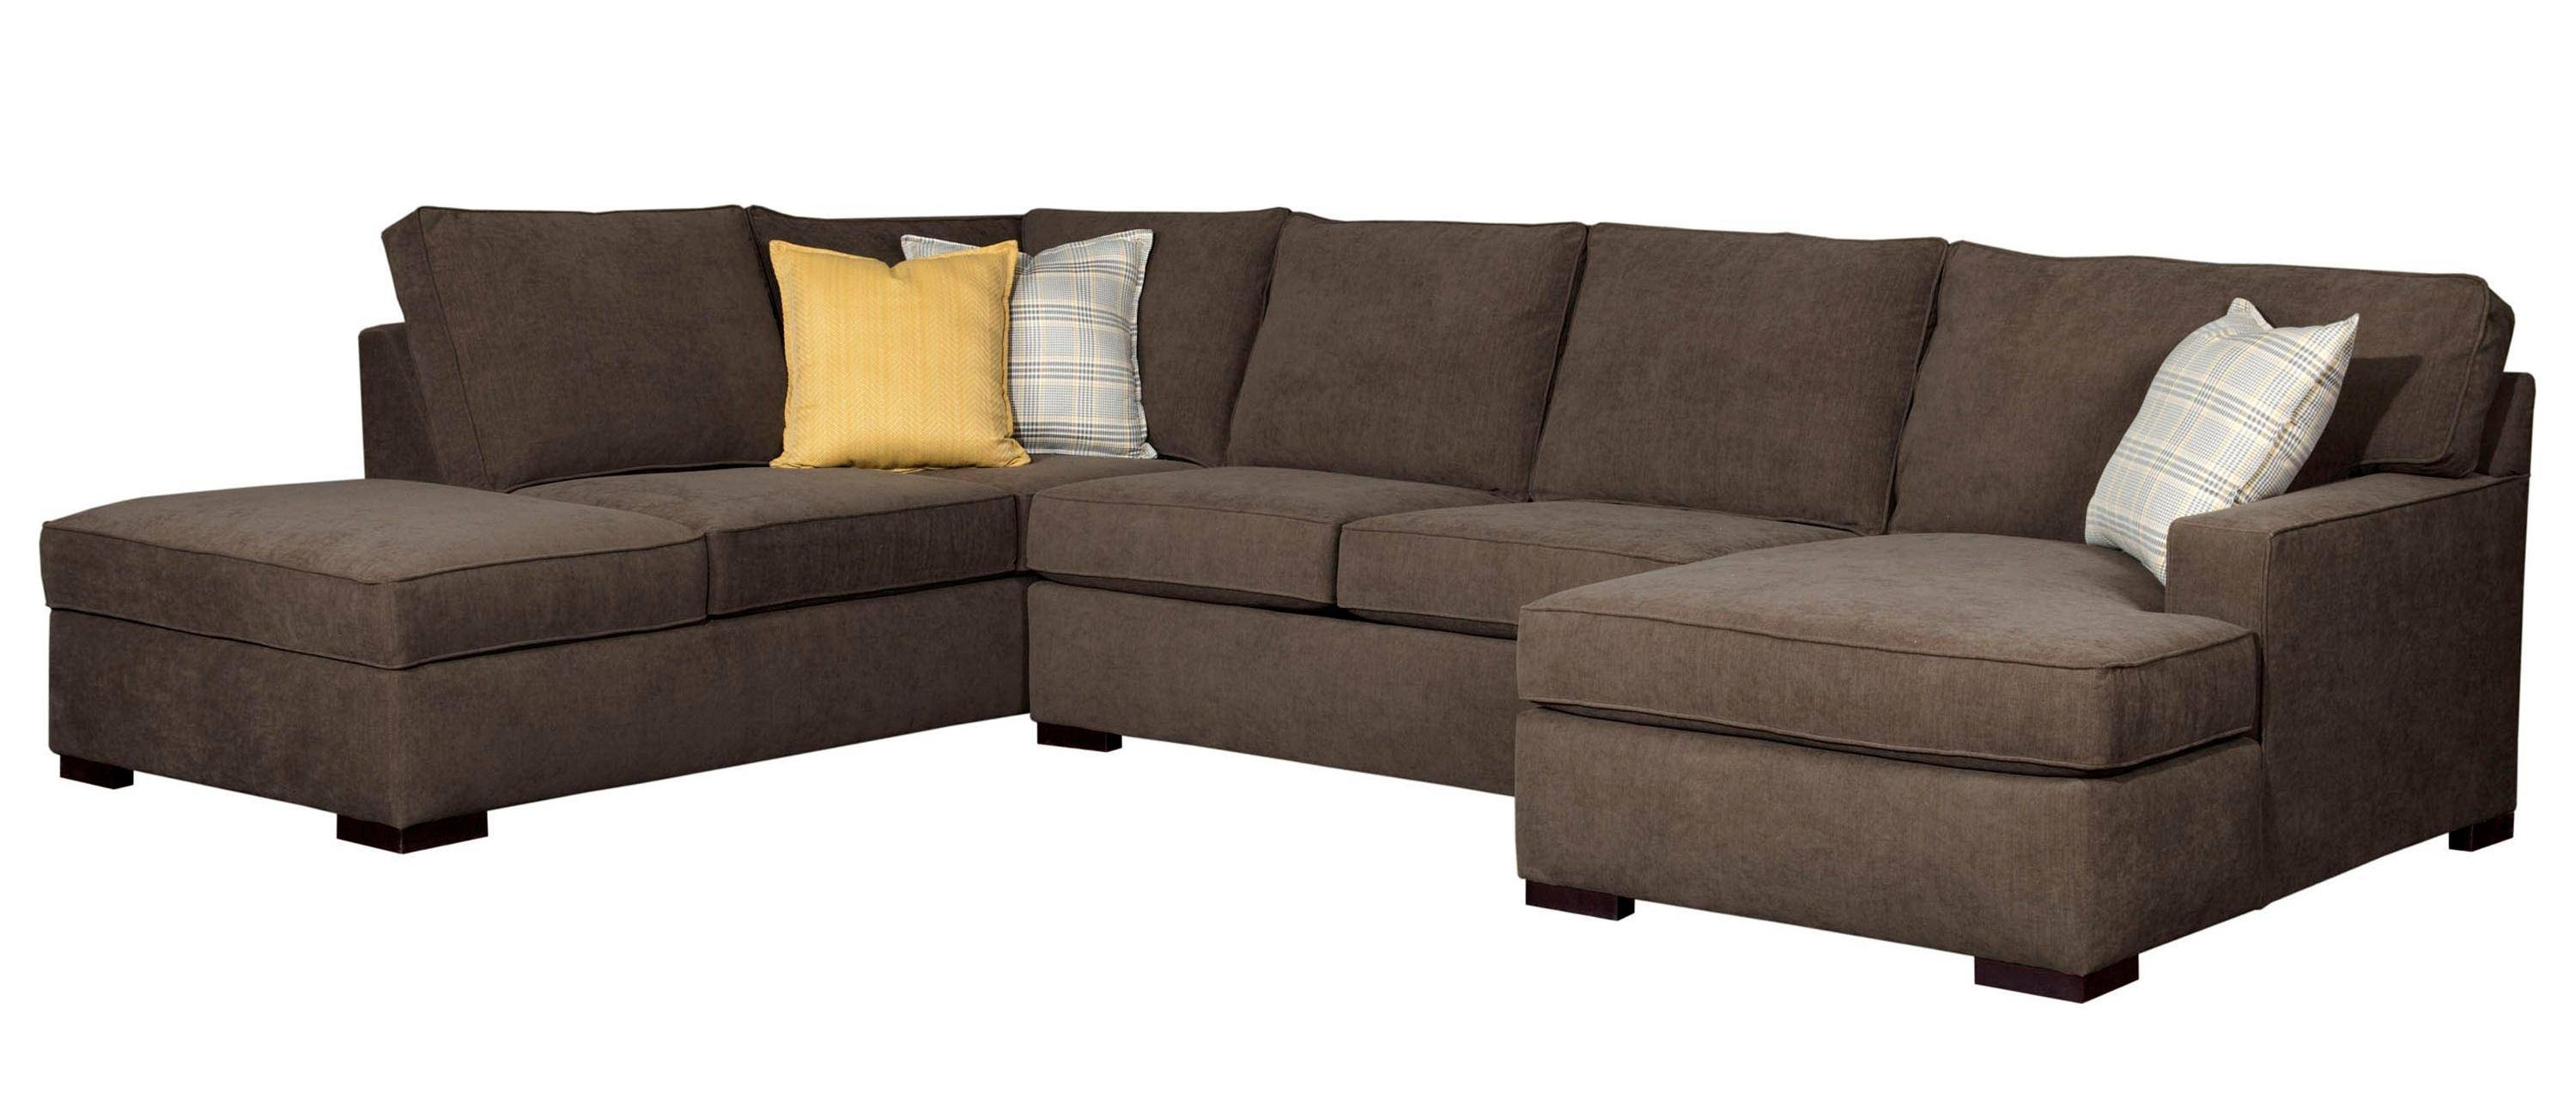 Broyhill Furniture Raphael Contemporary Sectional Sofa With Raf for Broyhill Sectional Sofa (Image 11 of 30)